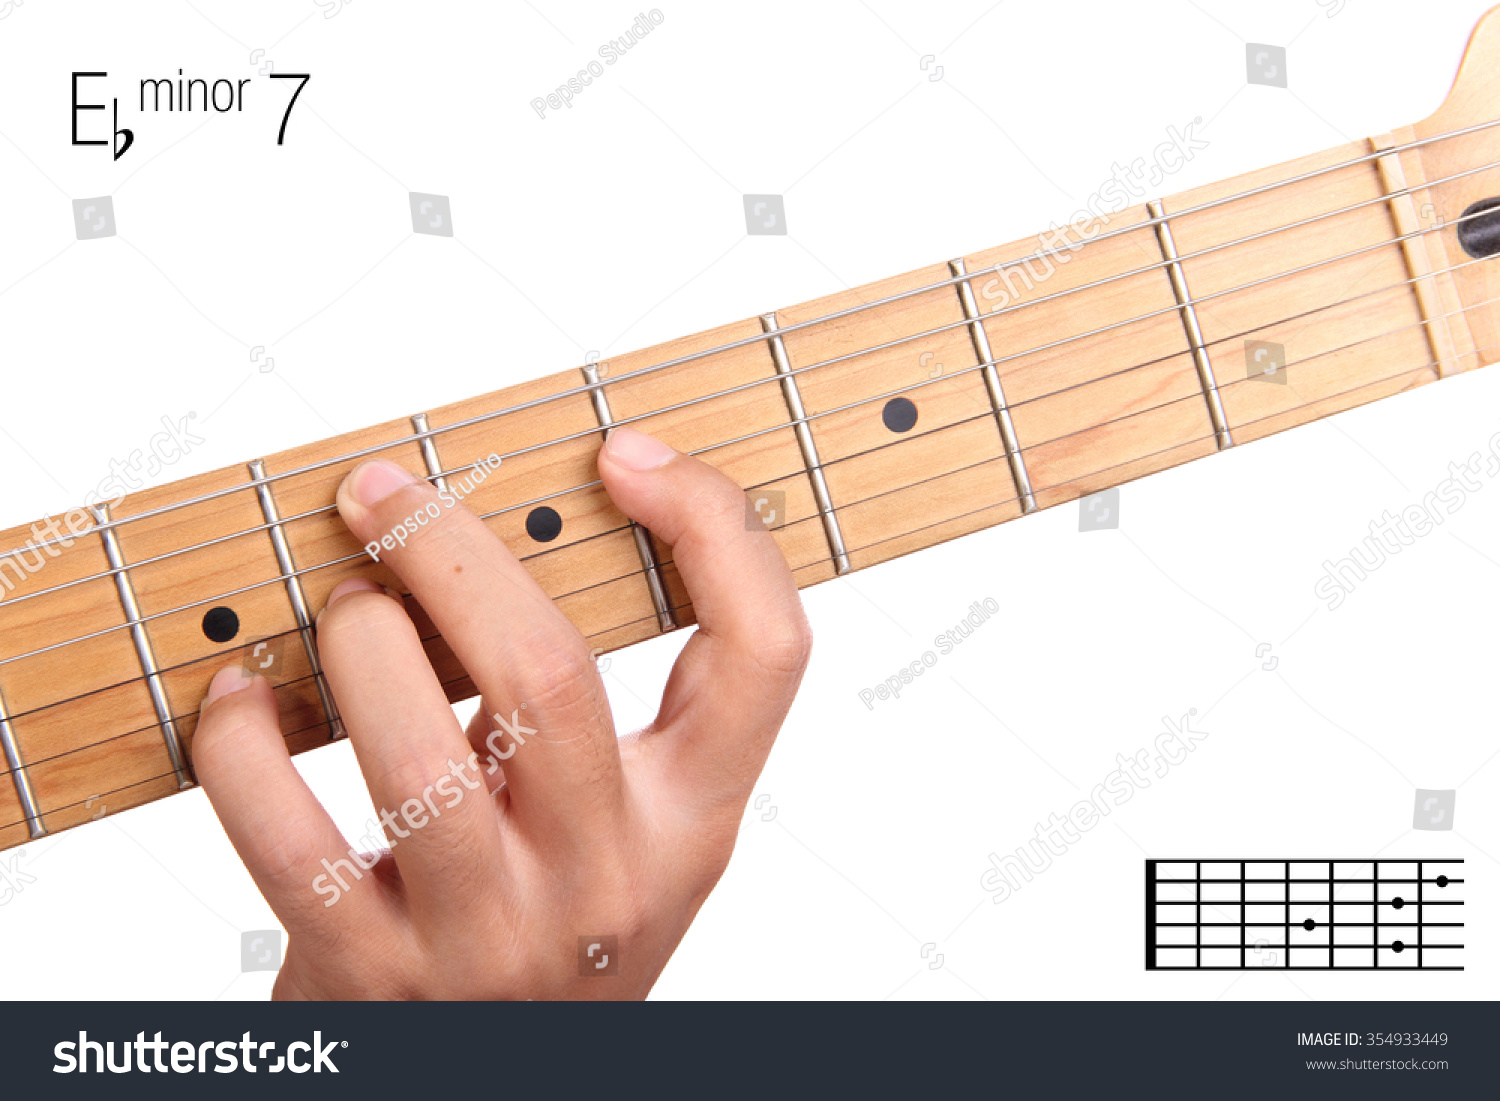 Ebm 7 Minor Seventh Keys Guitar Tutorial Stock Photo Edit Now